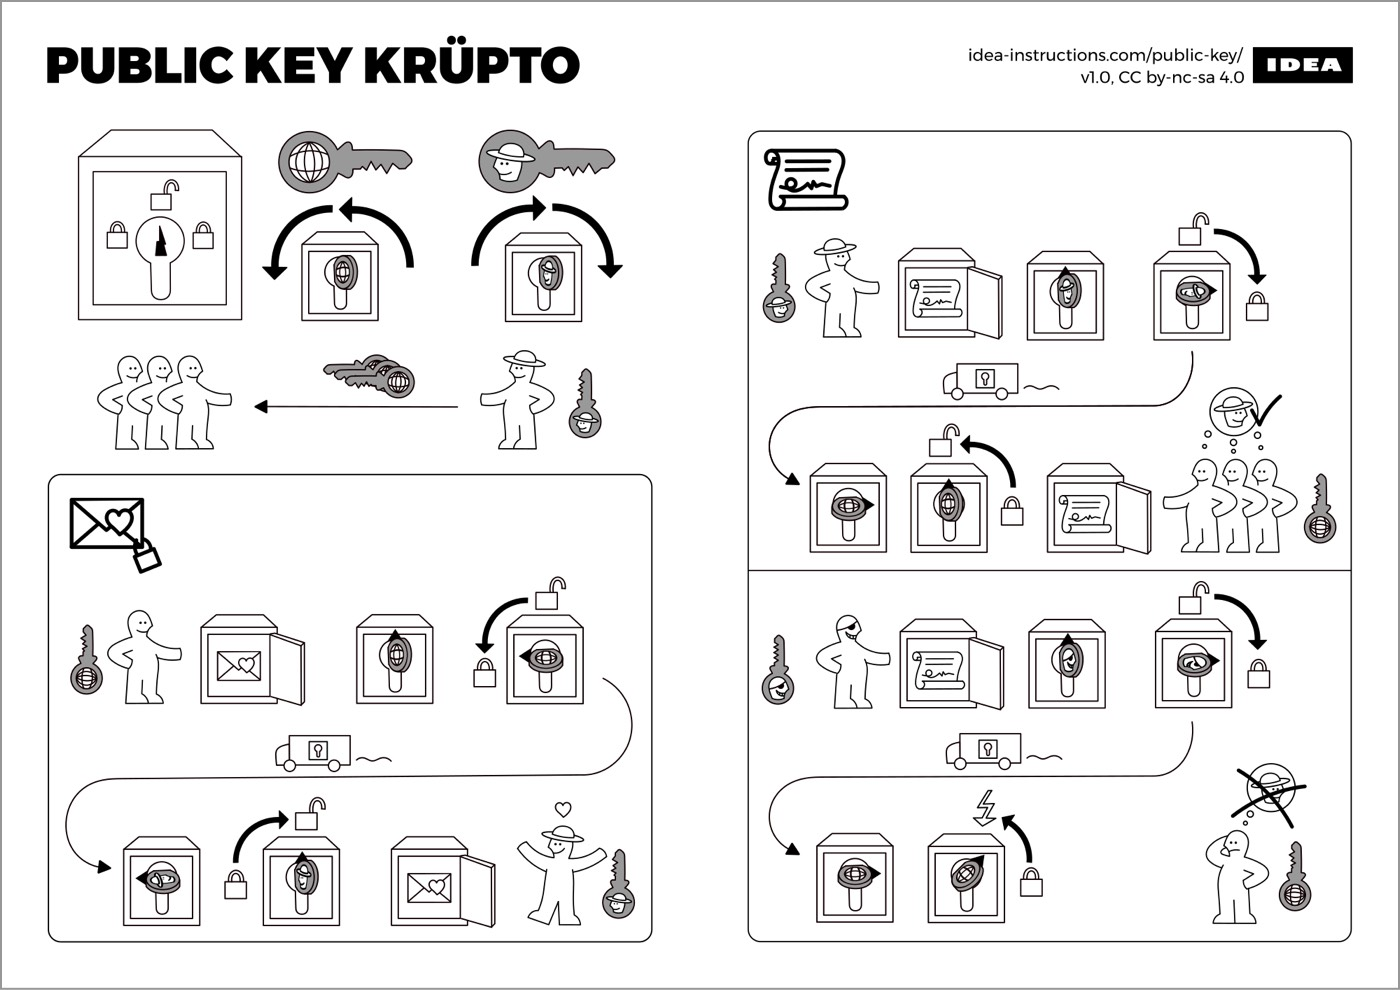 Ikea-style instructions for programming algorithms